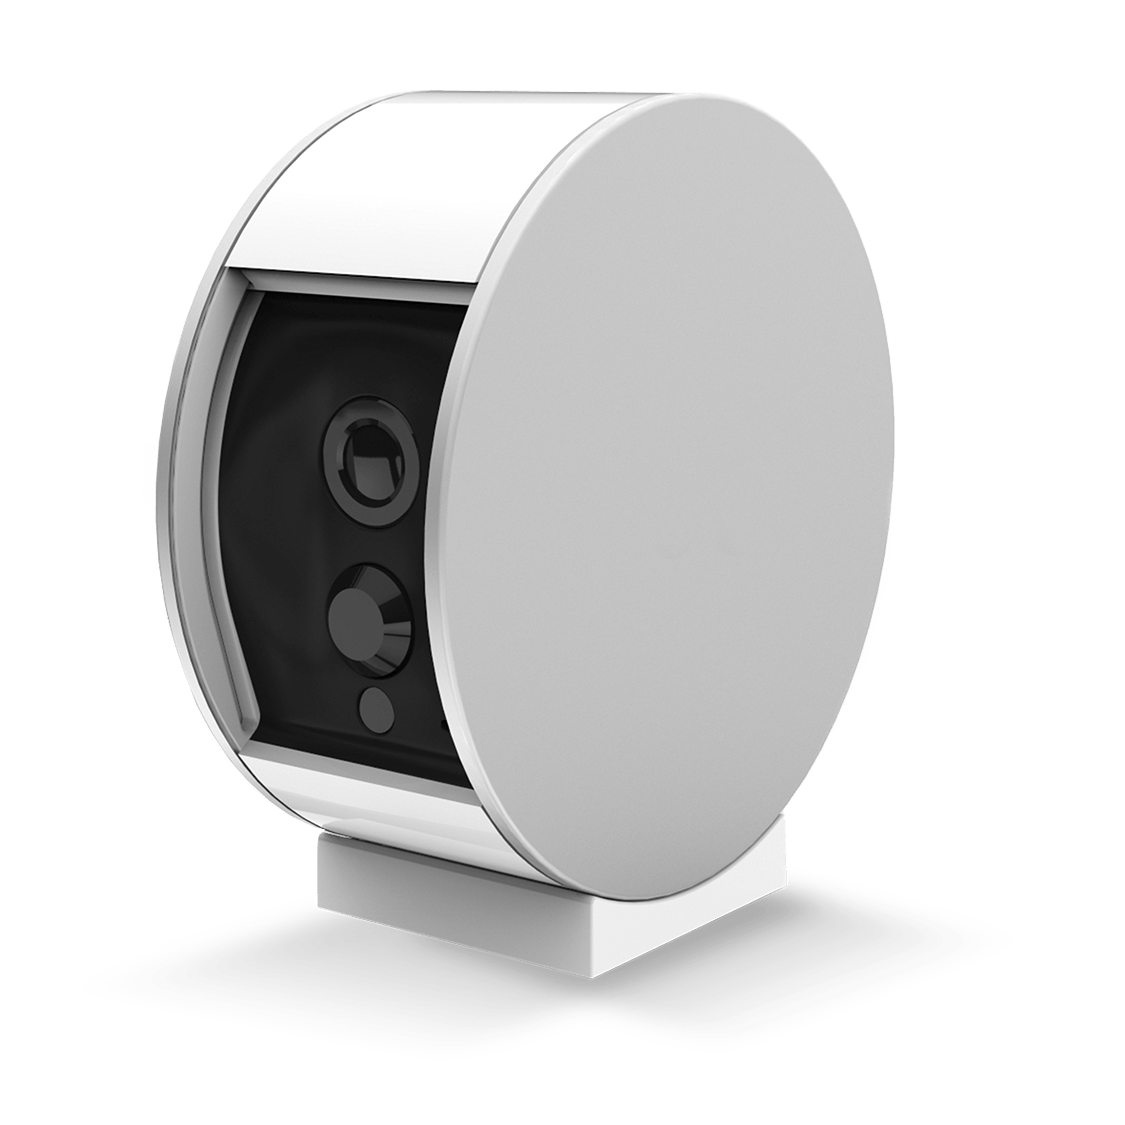 Camera De Surveillance Exterieur Somfy Somfy Indoor Camera Et Somfy Security Camera Service